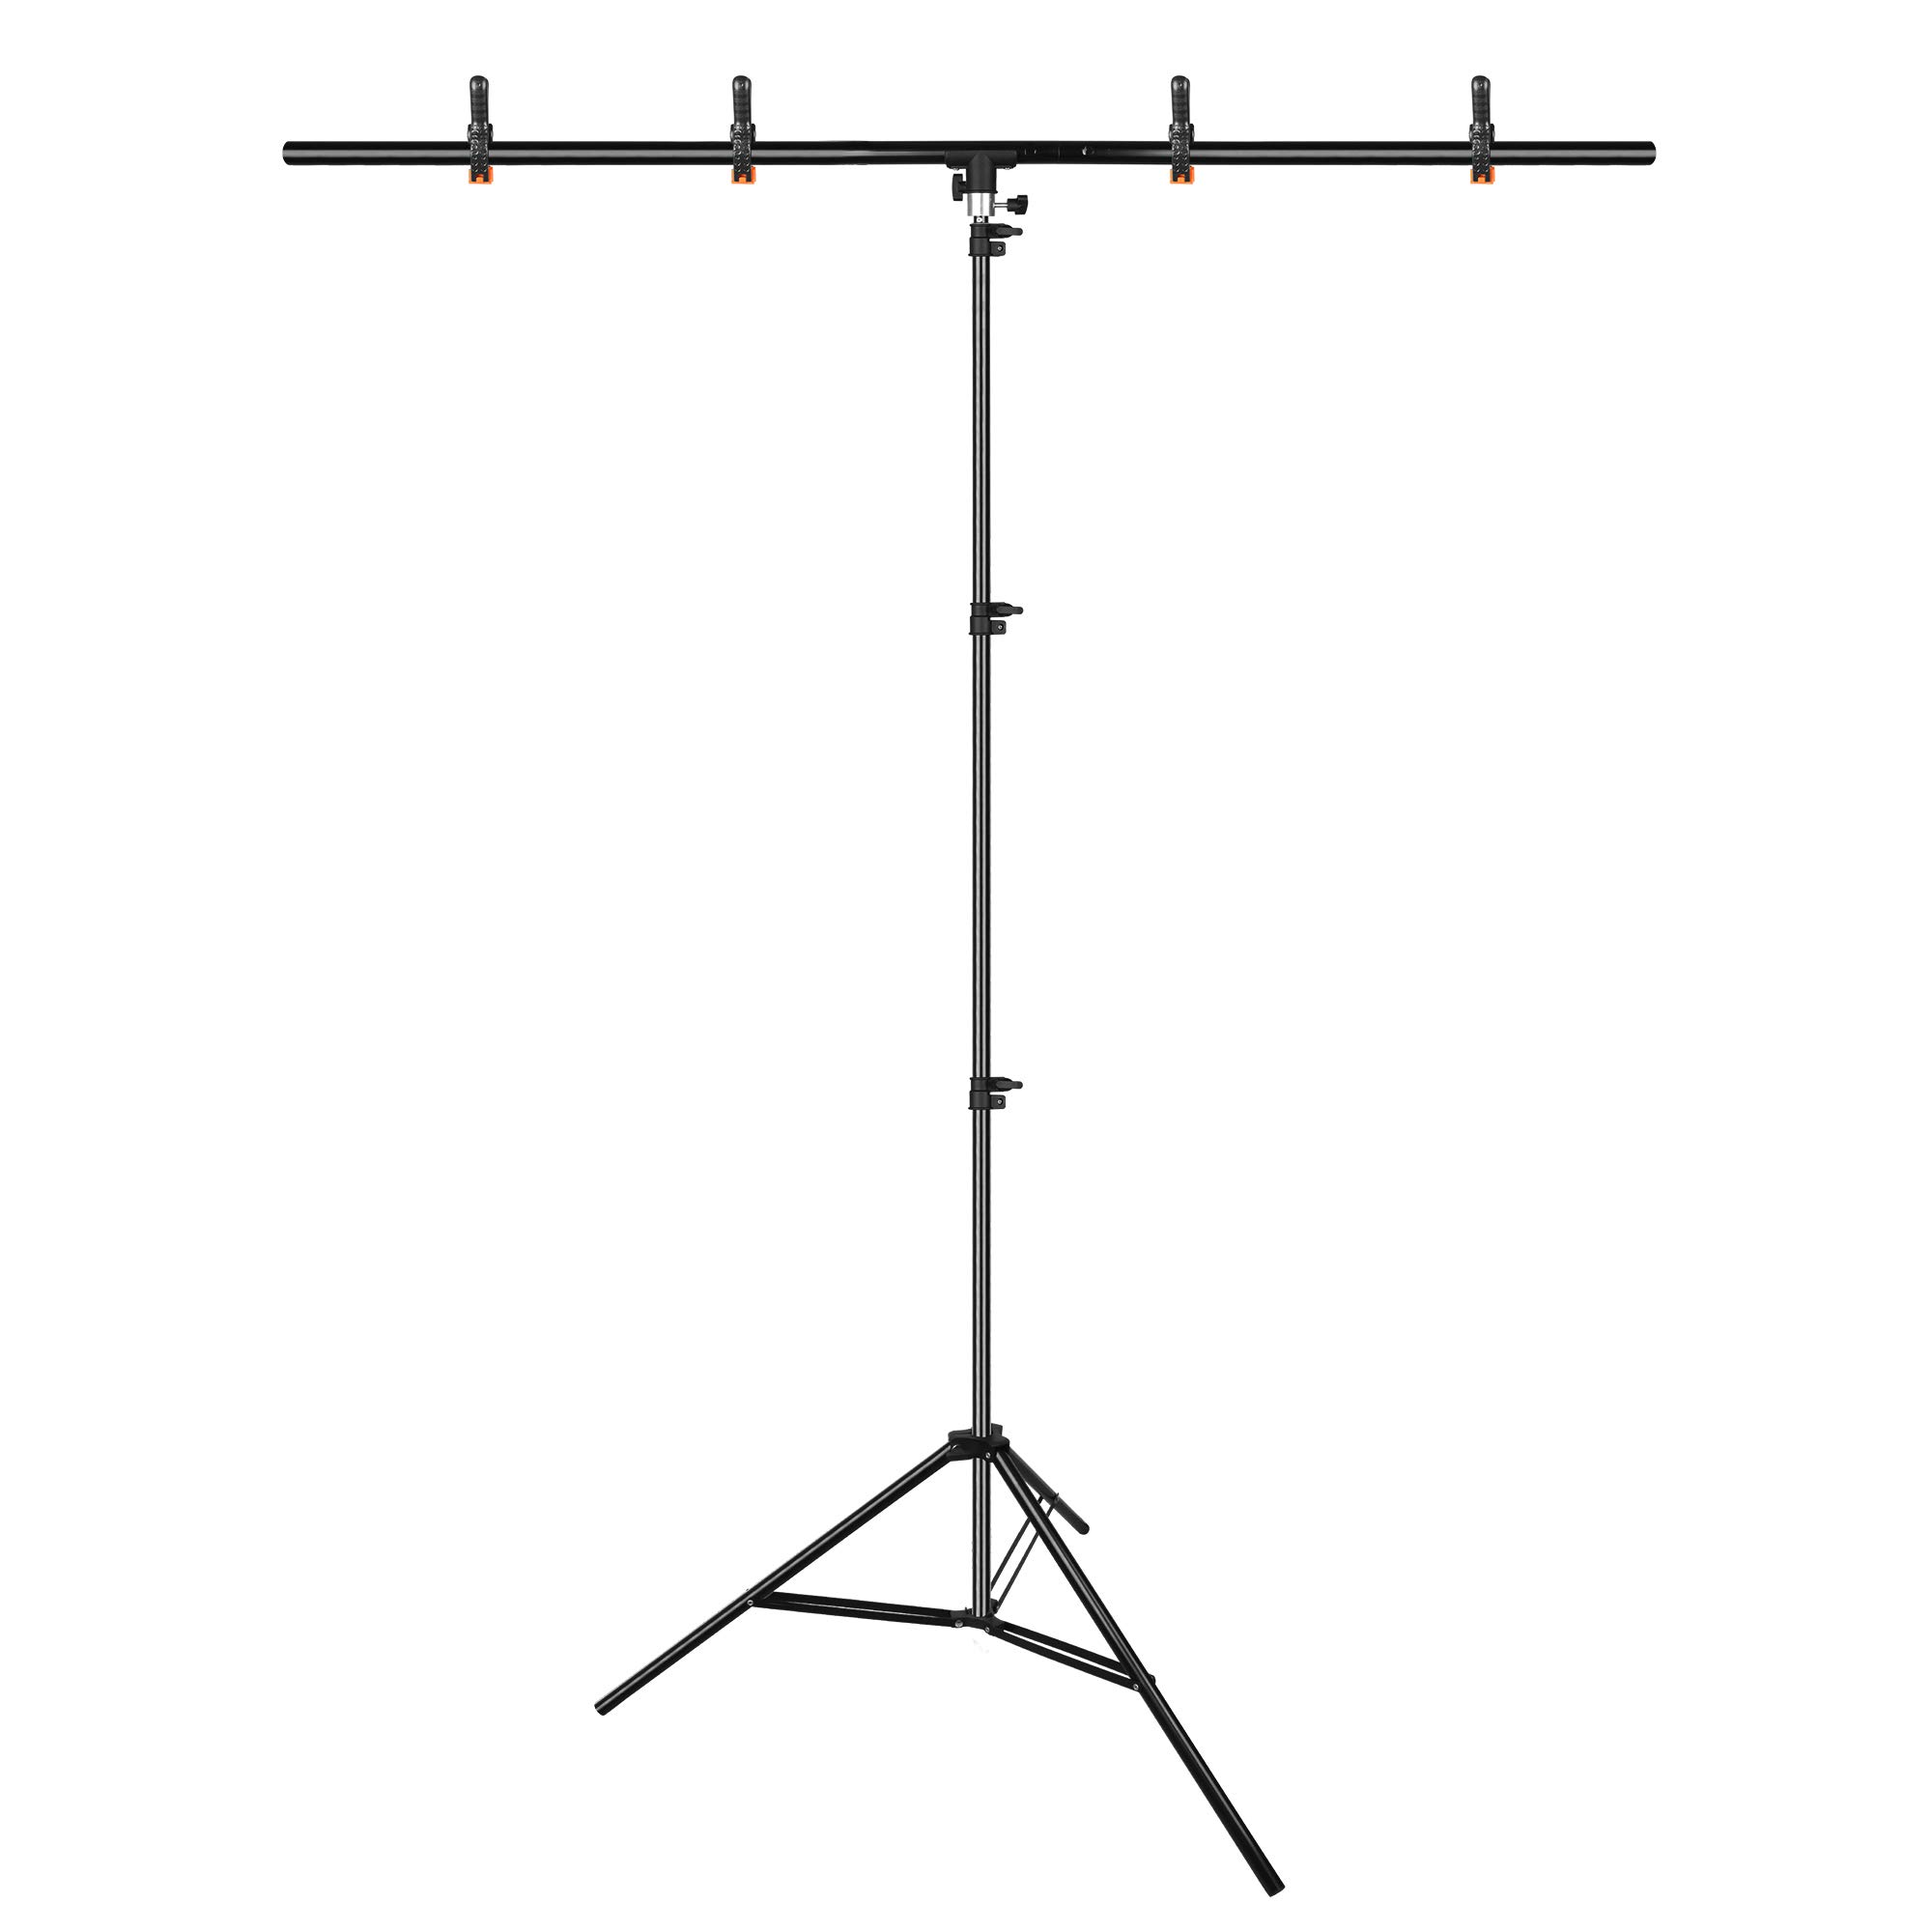 Emart T-Shape Portable Background Backdrop Support Stand Kit 5ft Wide 8.5ft Tall Adjustable Photo Backdrop Stand with 4 Spring Clamps by EMART